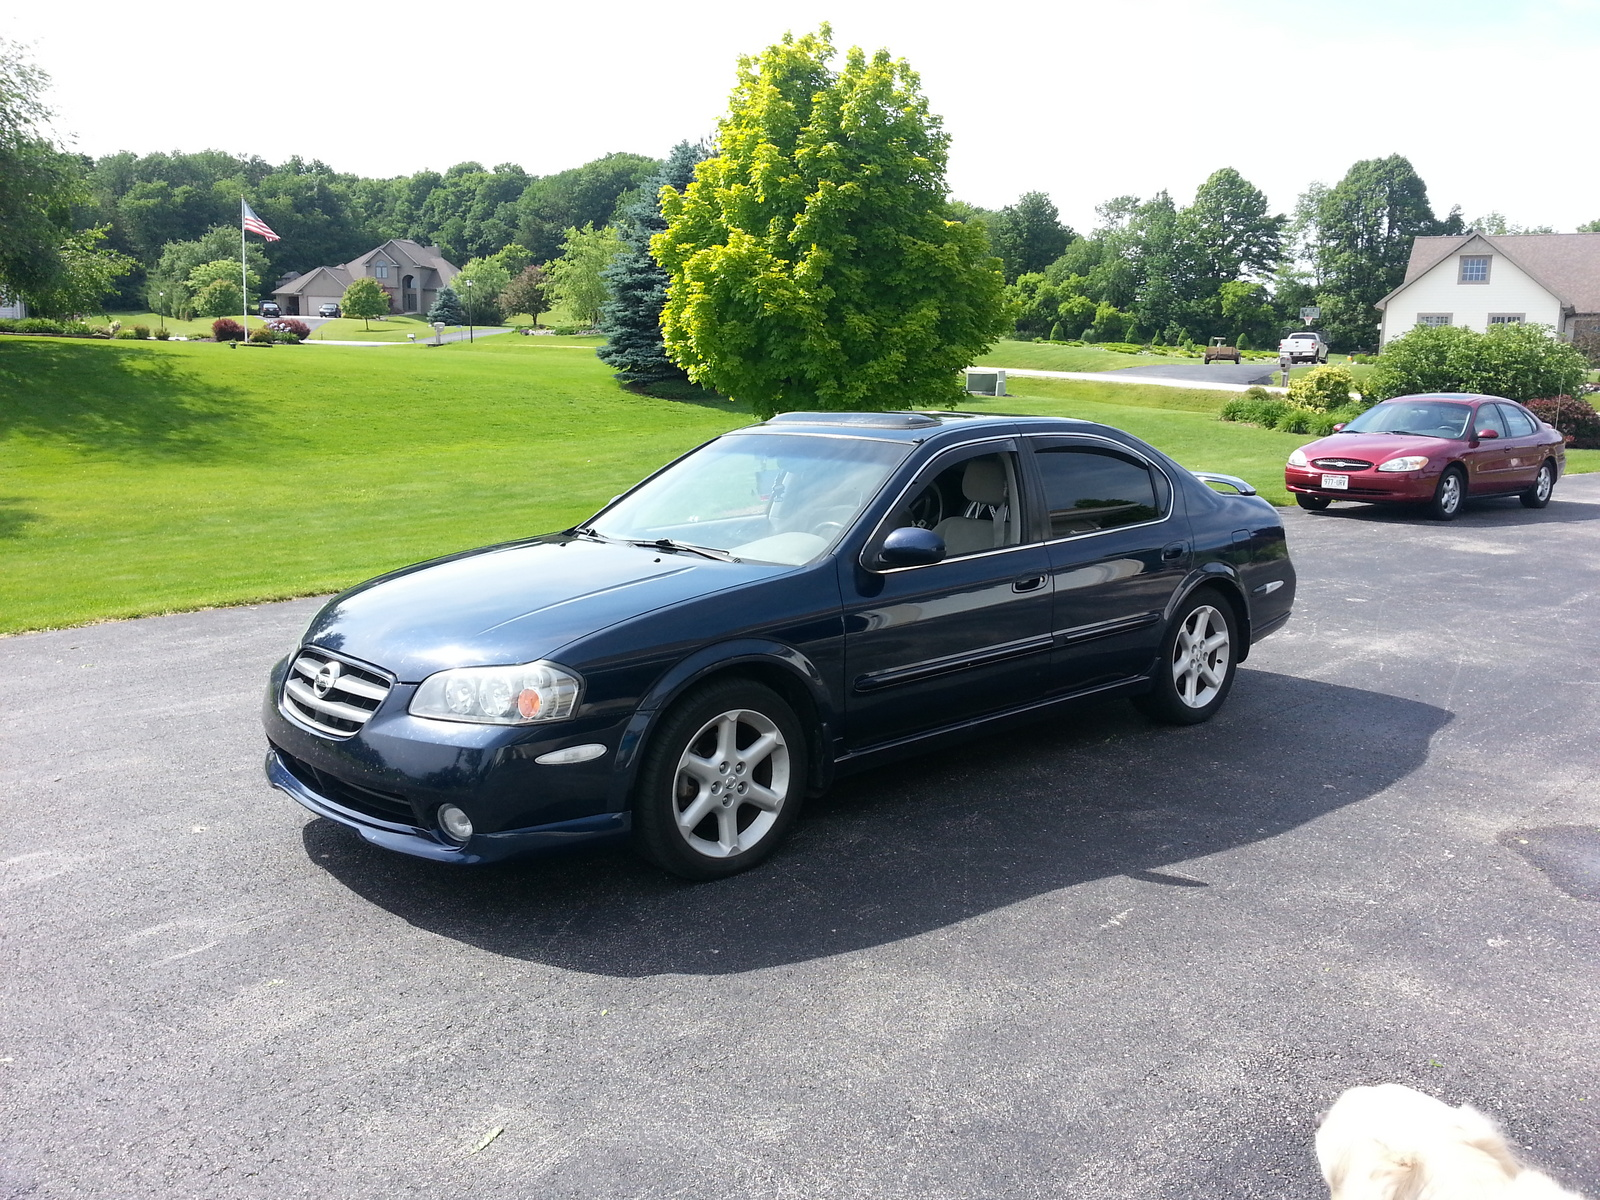 2003 nissan maxima 3 5 se related infomation specifications weili automotive network. Black Bedroom Furniture Sets. Home Design Ideas